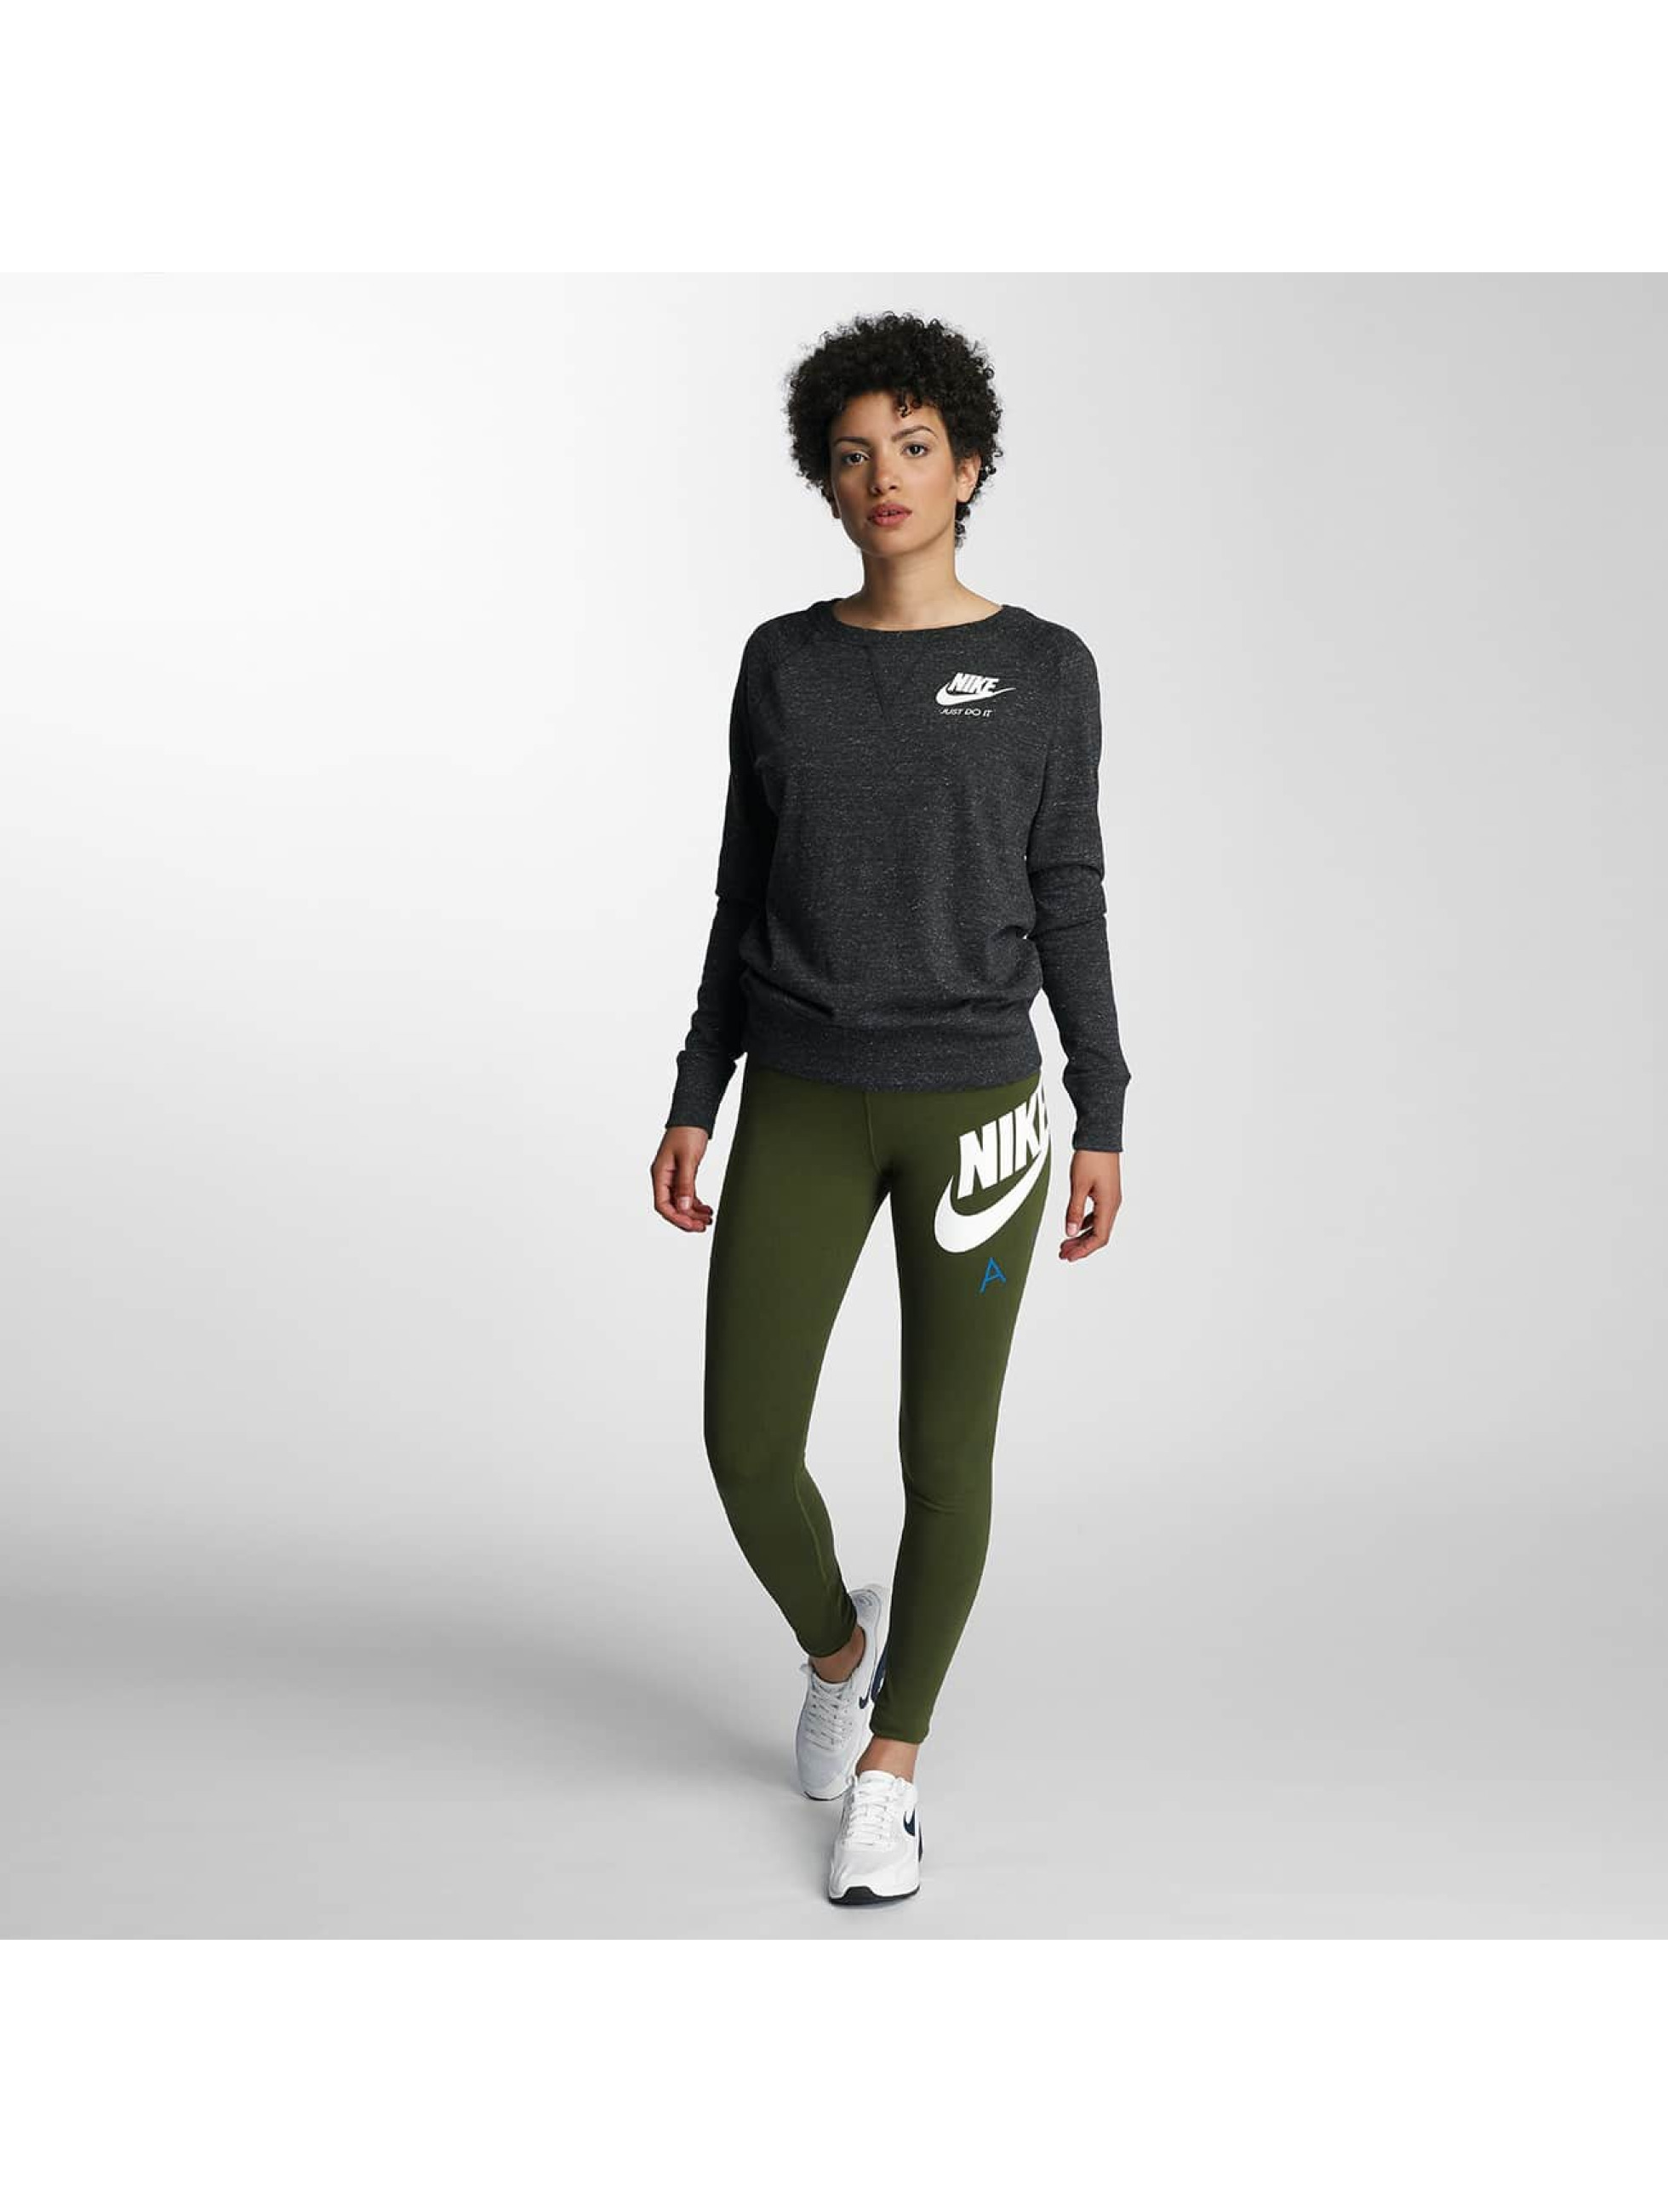 nike sportswear crew noir femme sweat pull nike acheter pas cher haut 309549. Black Bedroom Furniture Sets. Home Design Ideas